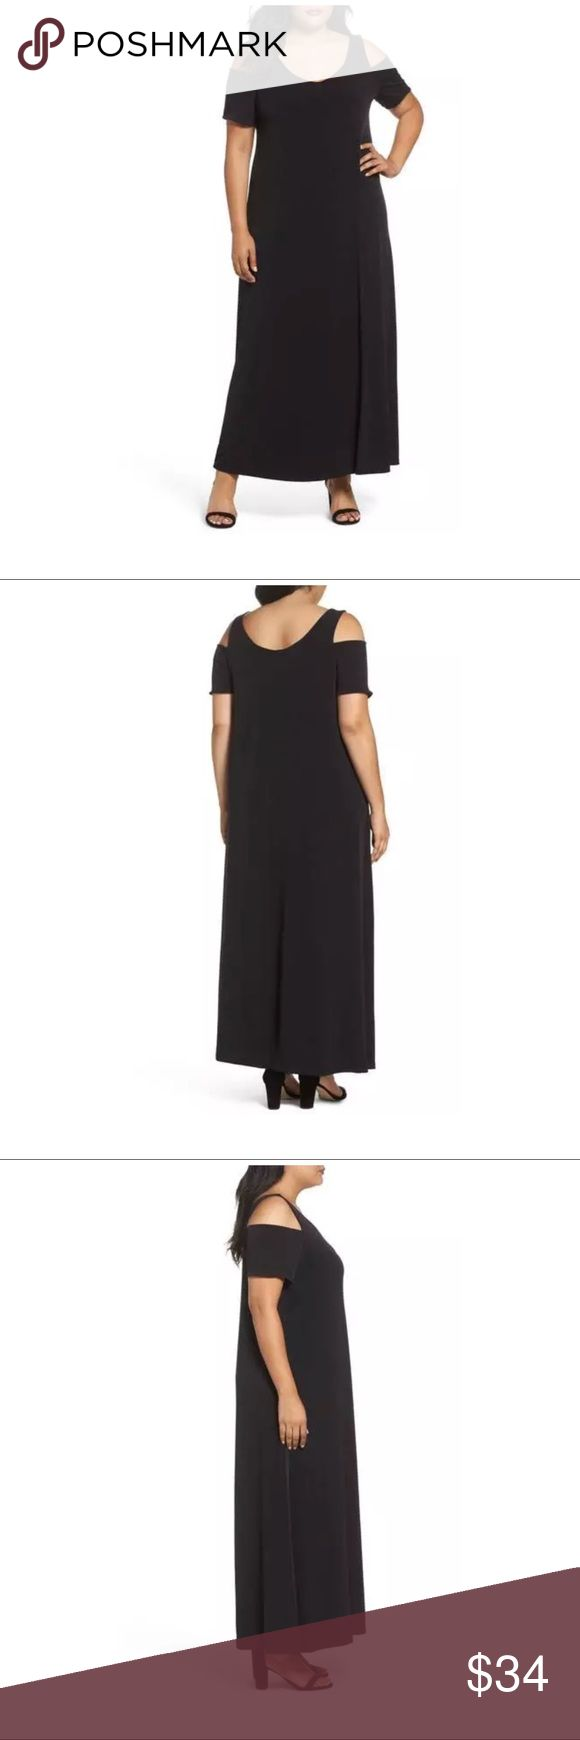 """$99 NEW Sejour for Nordstrom Cold Shoulder MaxI New without tags. In stores now for $99 + tax Model photos to show fit  Black Cold shoulder style Stretch Lined  Size 14 W- designer/size tag has been removed to prevent returns- refer to measurements   Measures approximately: total length 57"""" bust across 22""""  High end department store shelf pull- new without tags. May have had customer contact *Had deodorant on sides from being tried on in stores. Has been washed, air dried. Ready to wear…"""